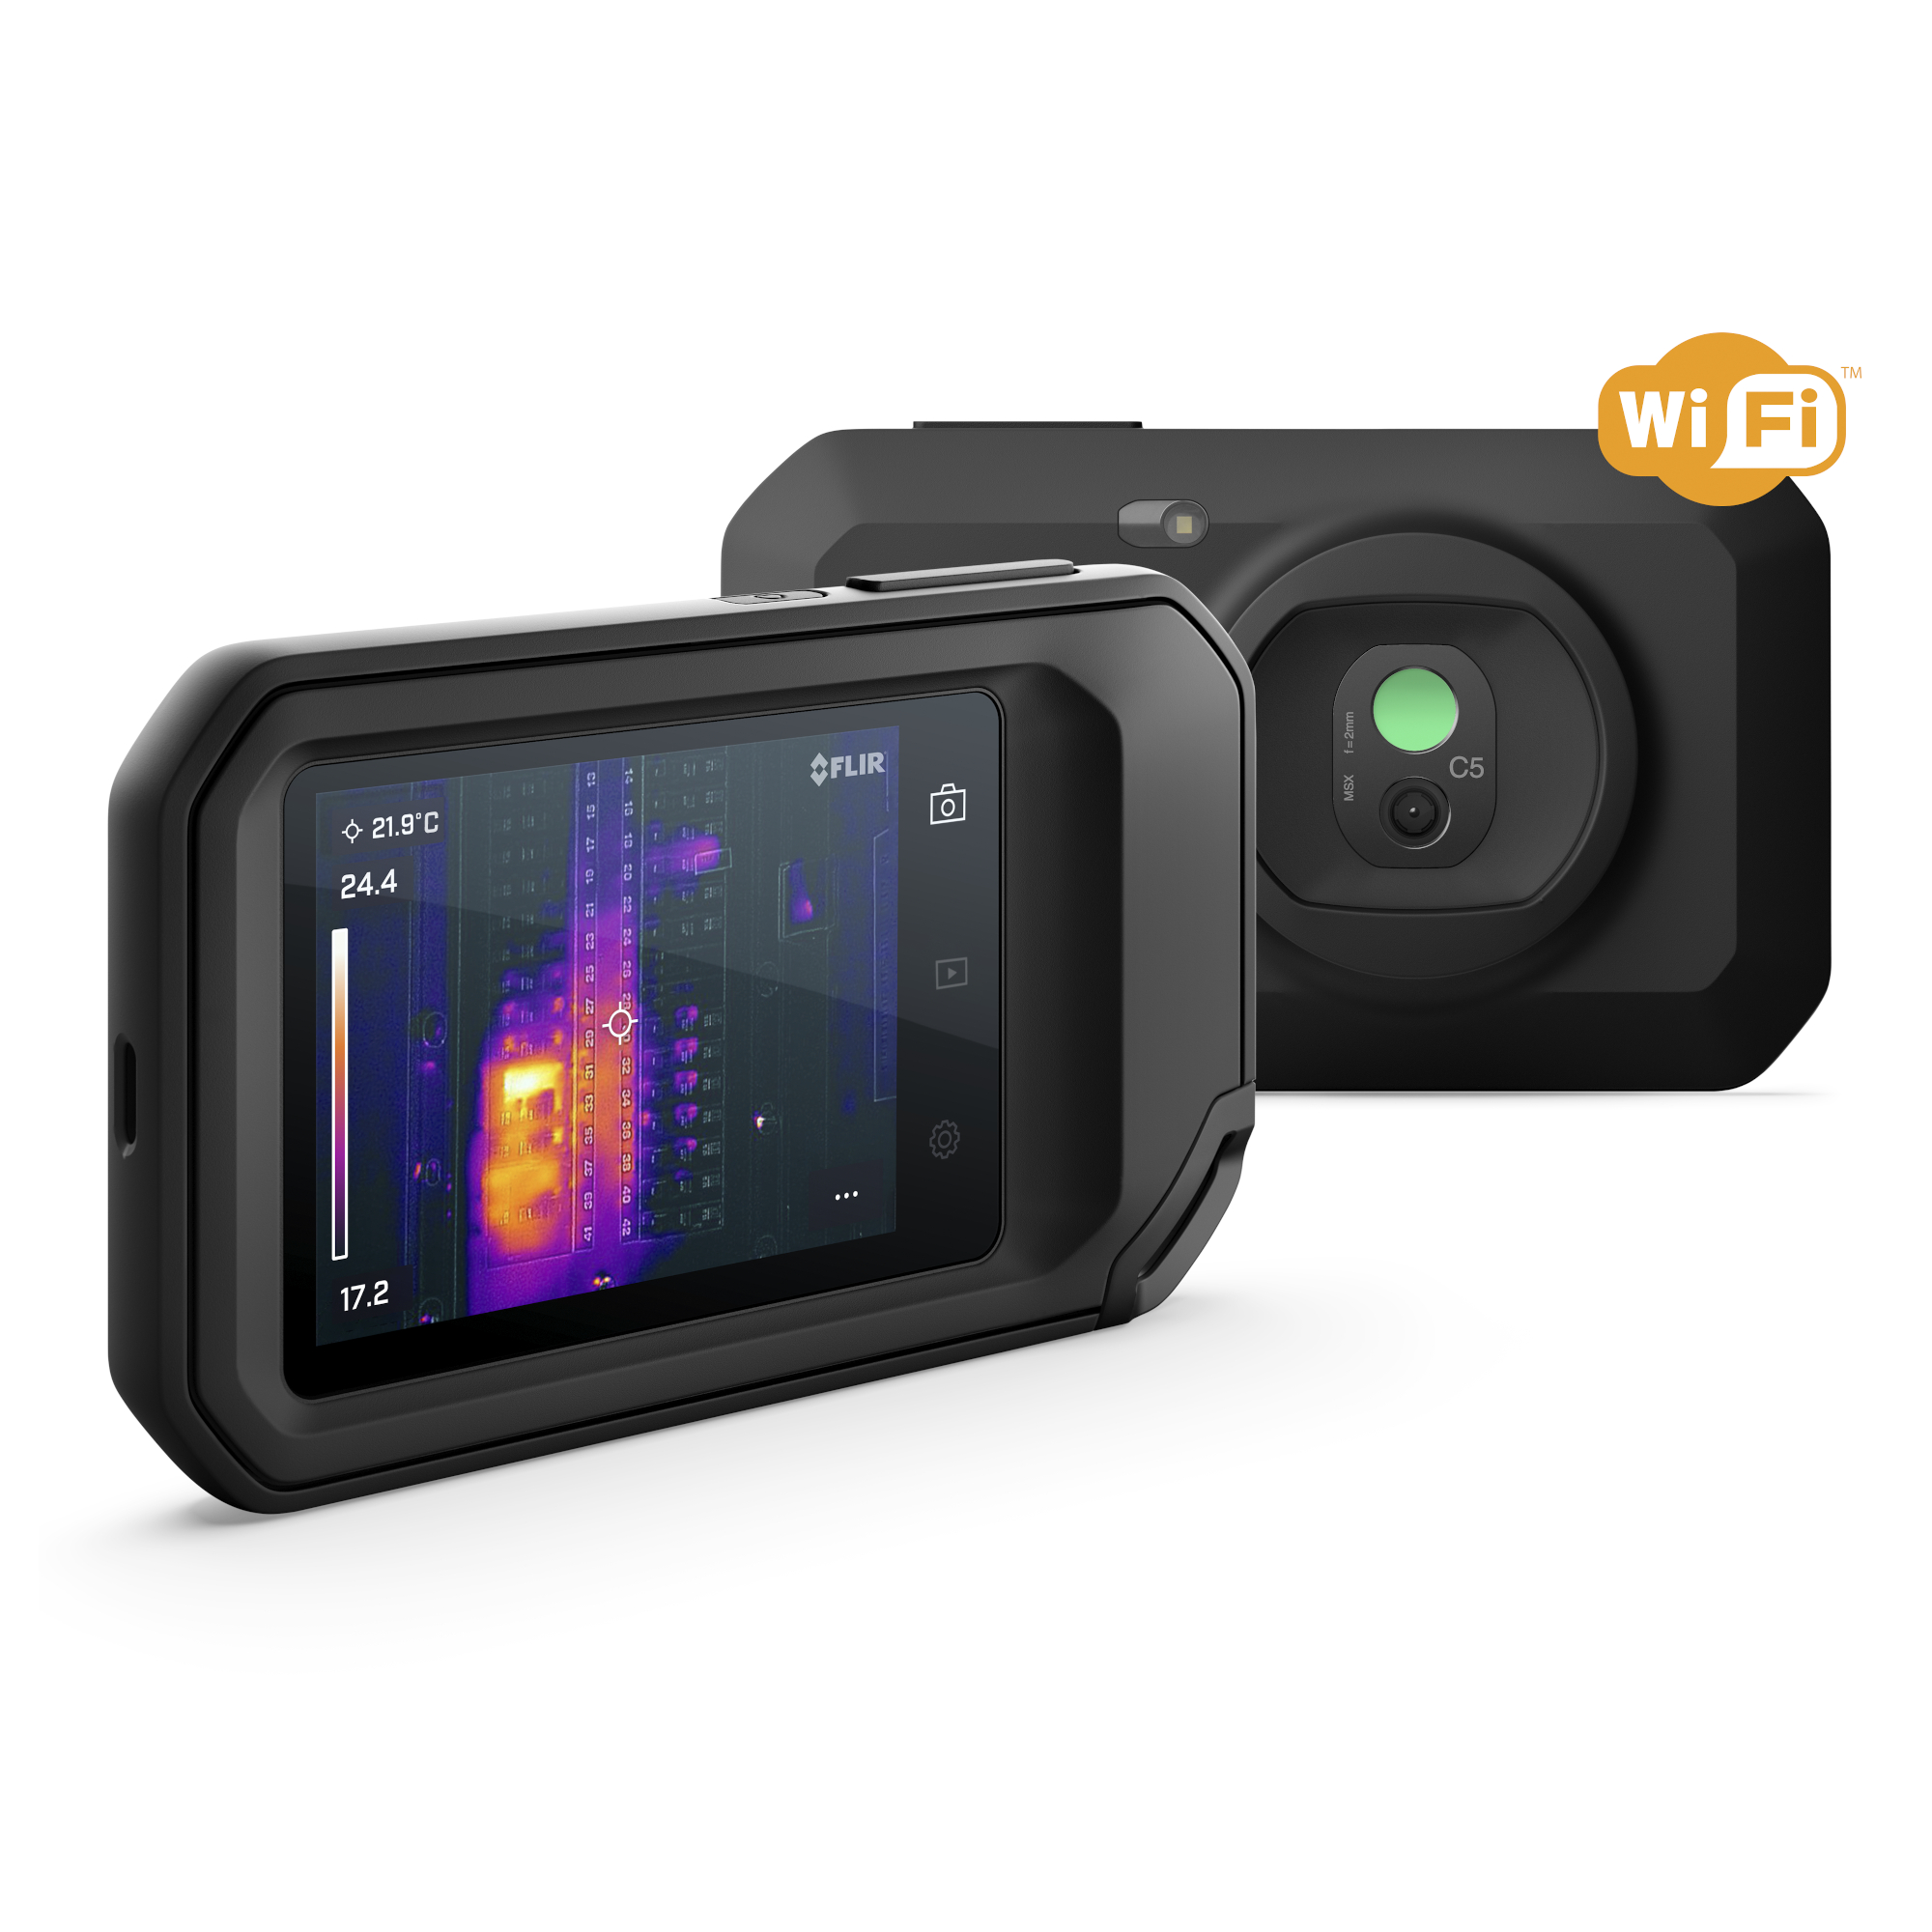 Flir C5 Compact Thermal Camera with WiFi Cloud Connectivity